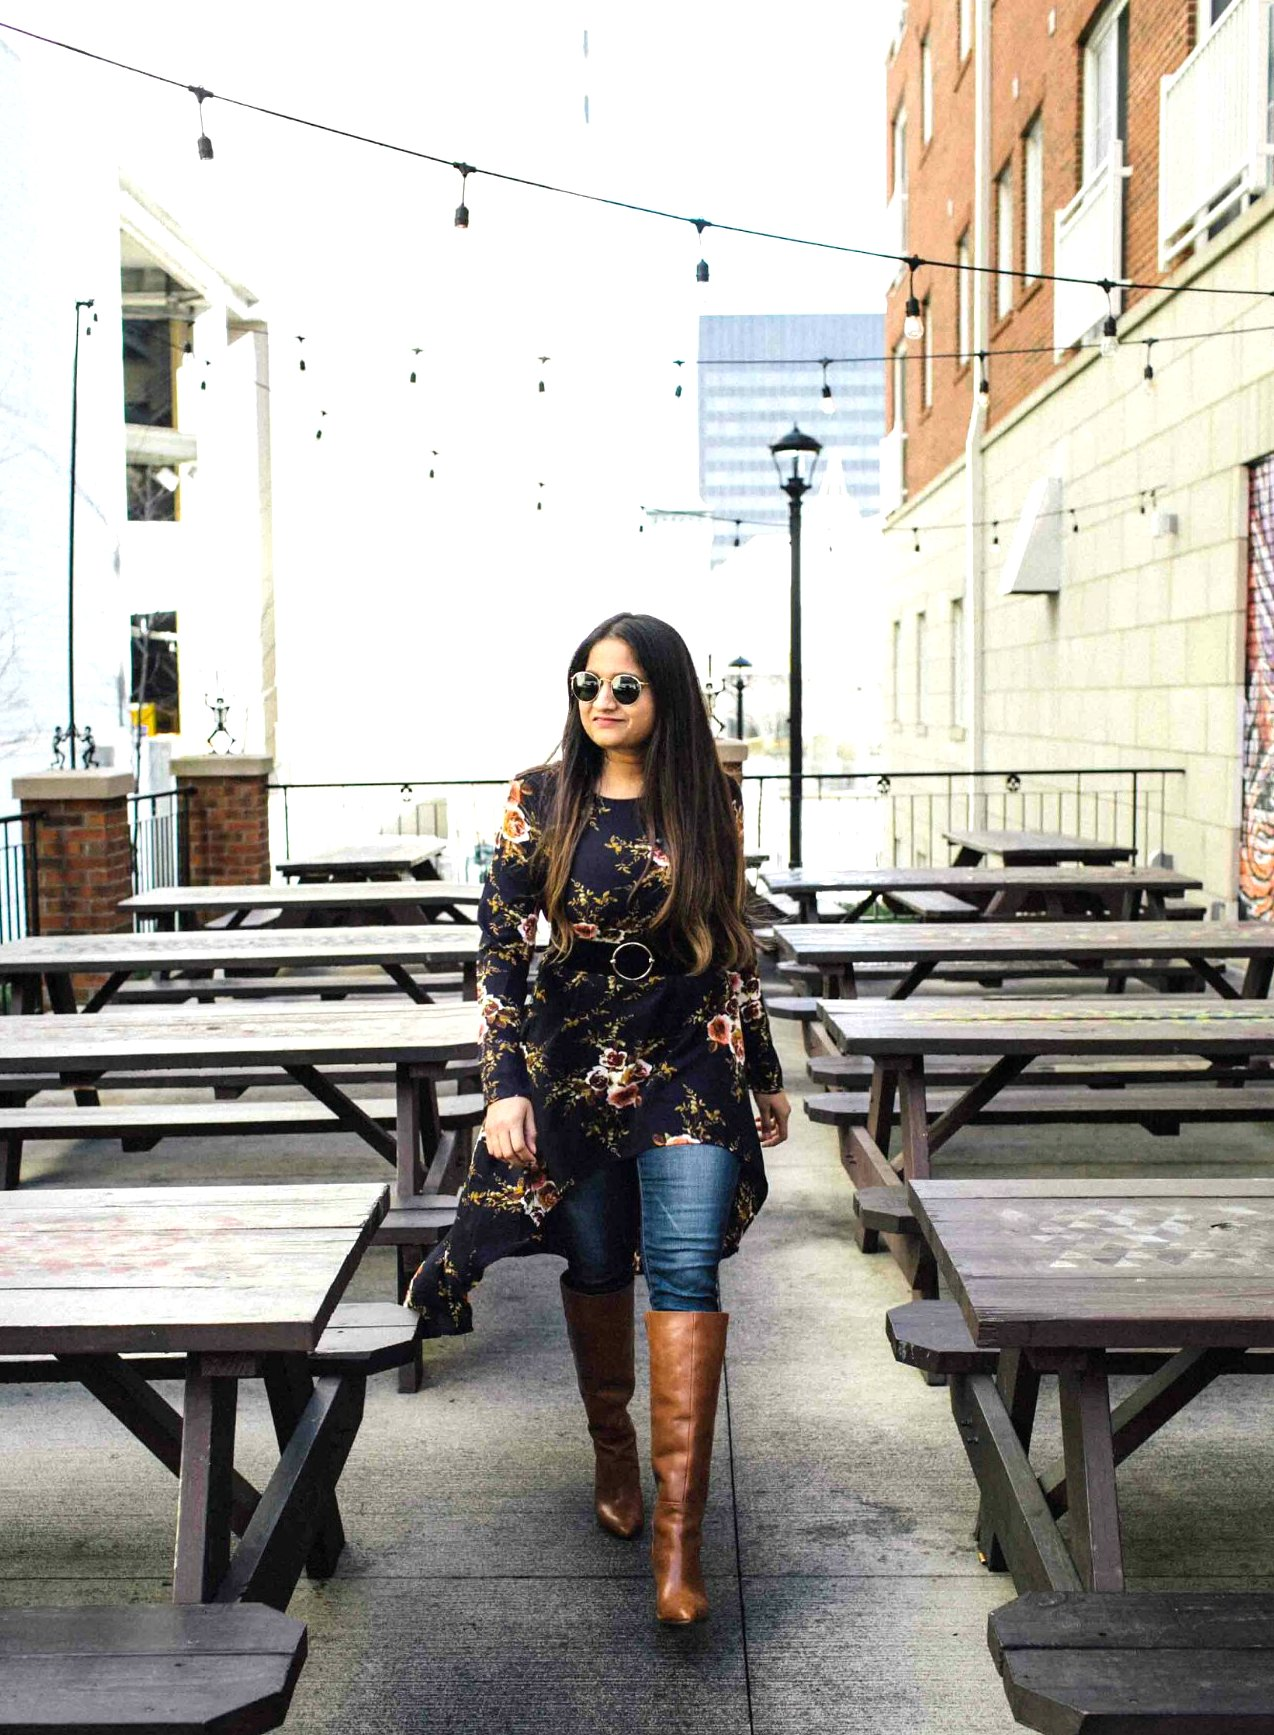 Lifestyle BLog Dreaming Loud wearing Shien Flower Print Dip Hem Longline Trapeze Tunic Top1 | SheIn High Low Tunic Top styled by popular Ohio modest fashion blogger, Dreaming Loud